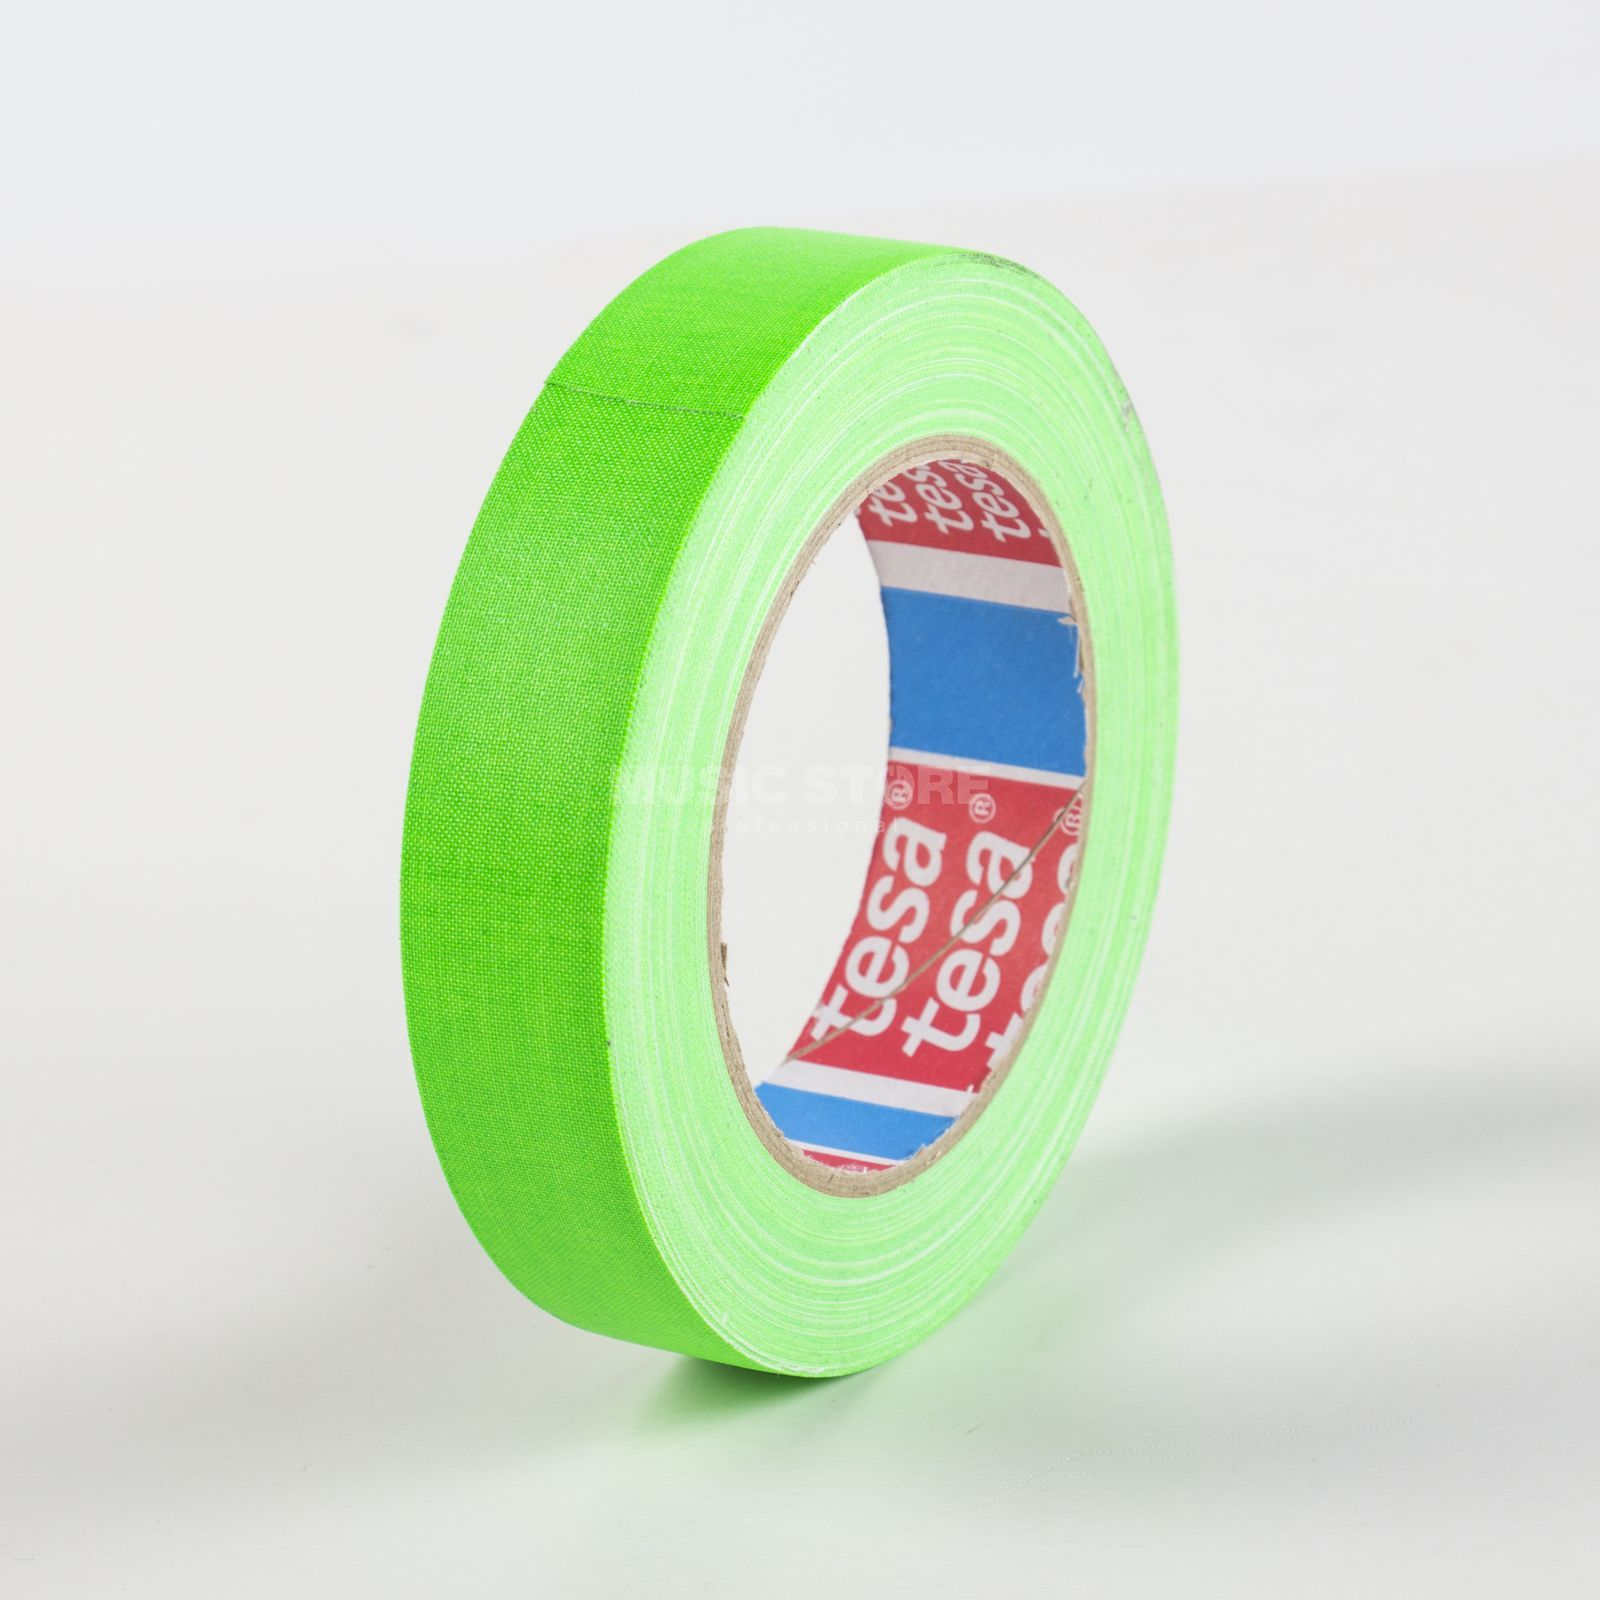 Tesa Highlight Gaffa Tape 4671 neongrün, 25m, 25mm Produktbillede